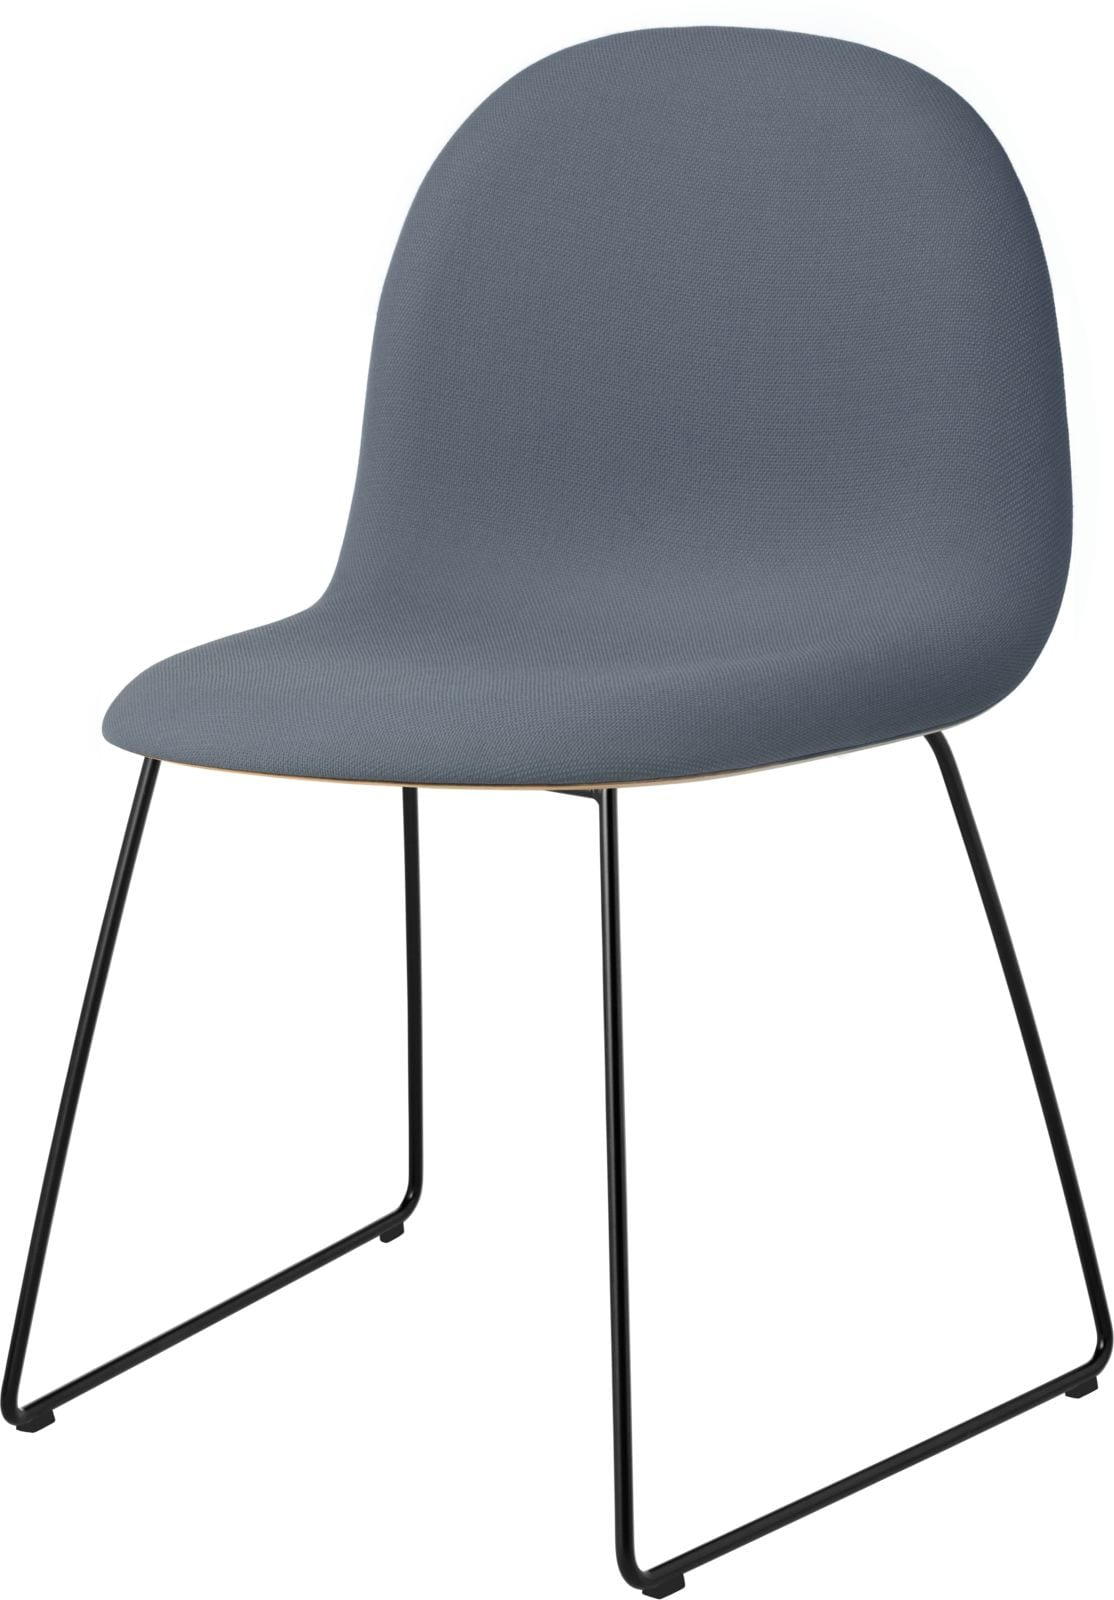 3D Dining Chair- Front Upholstered, Sledge Base